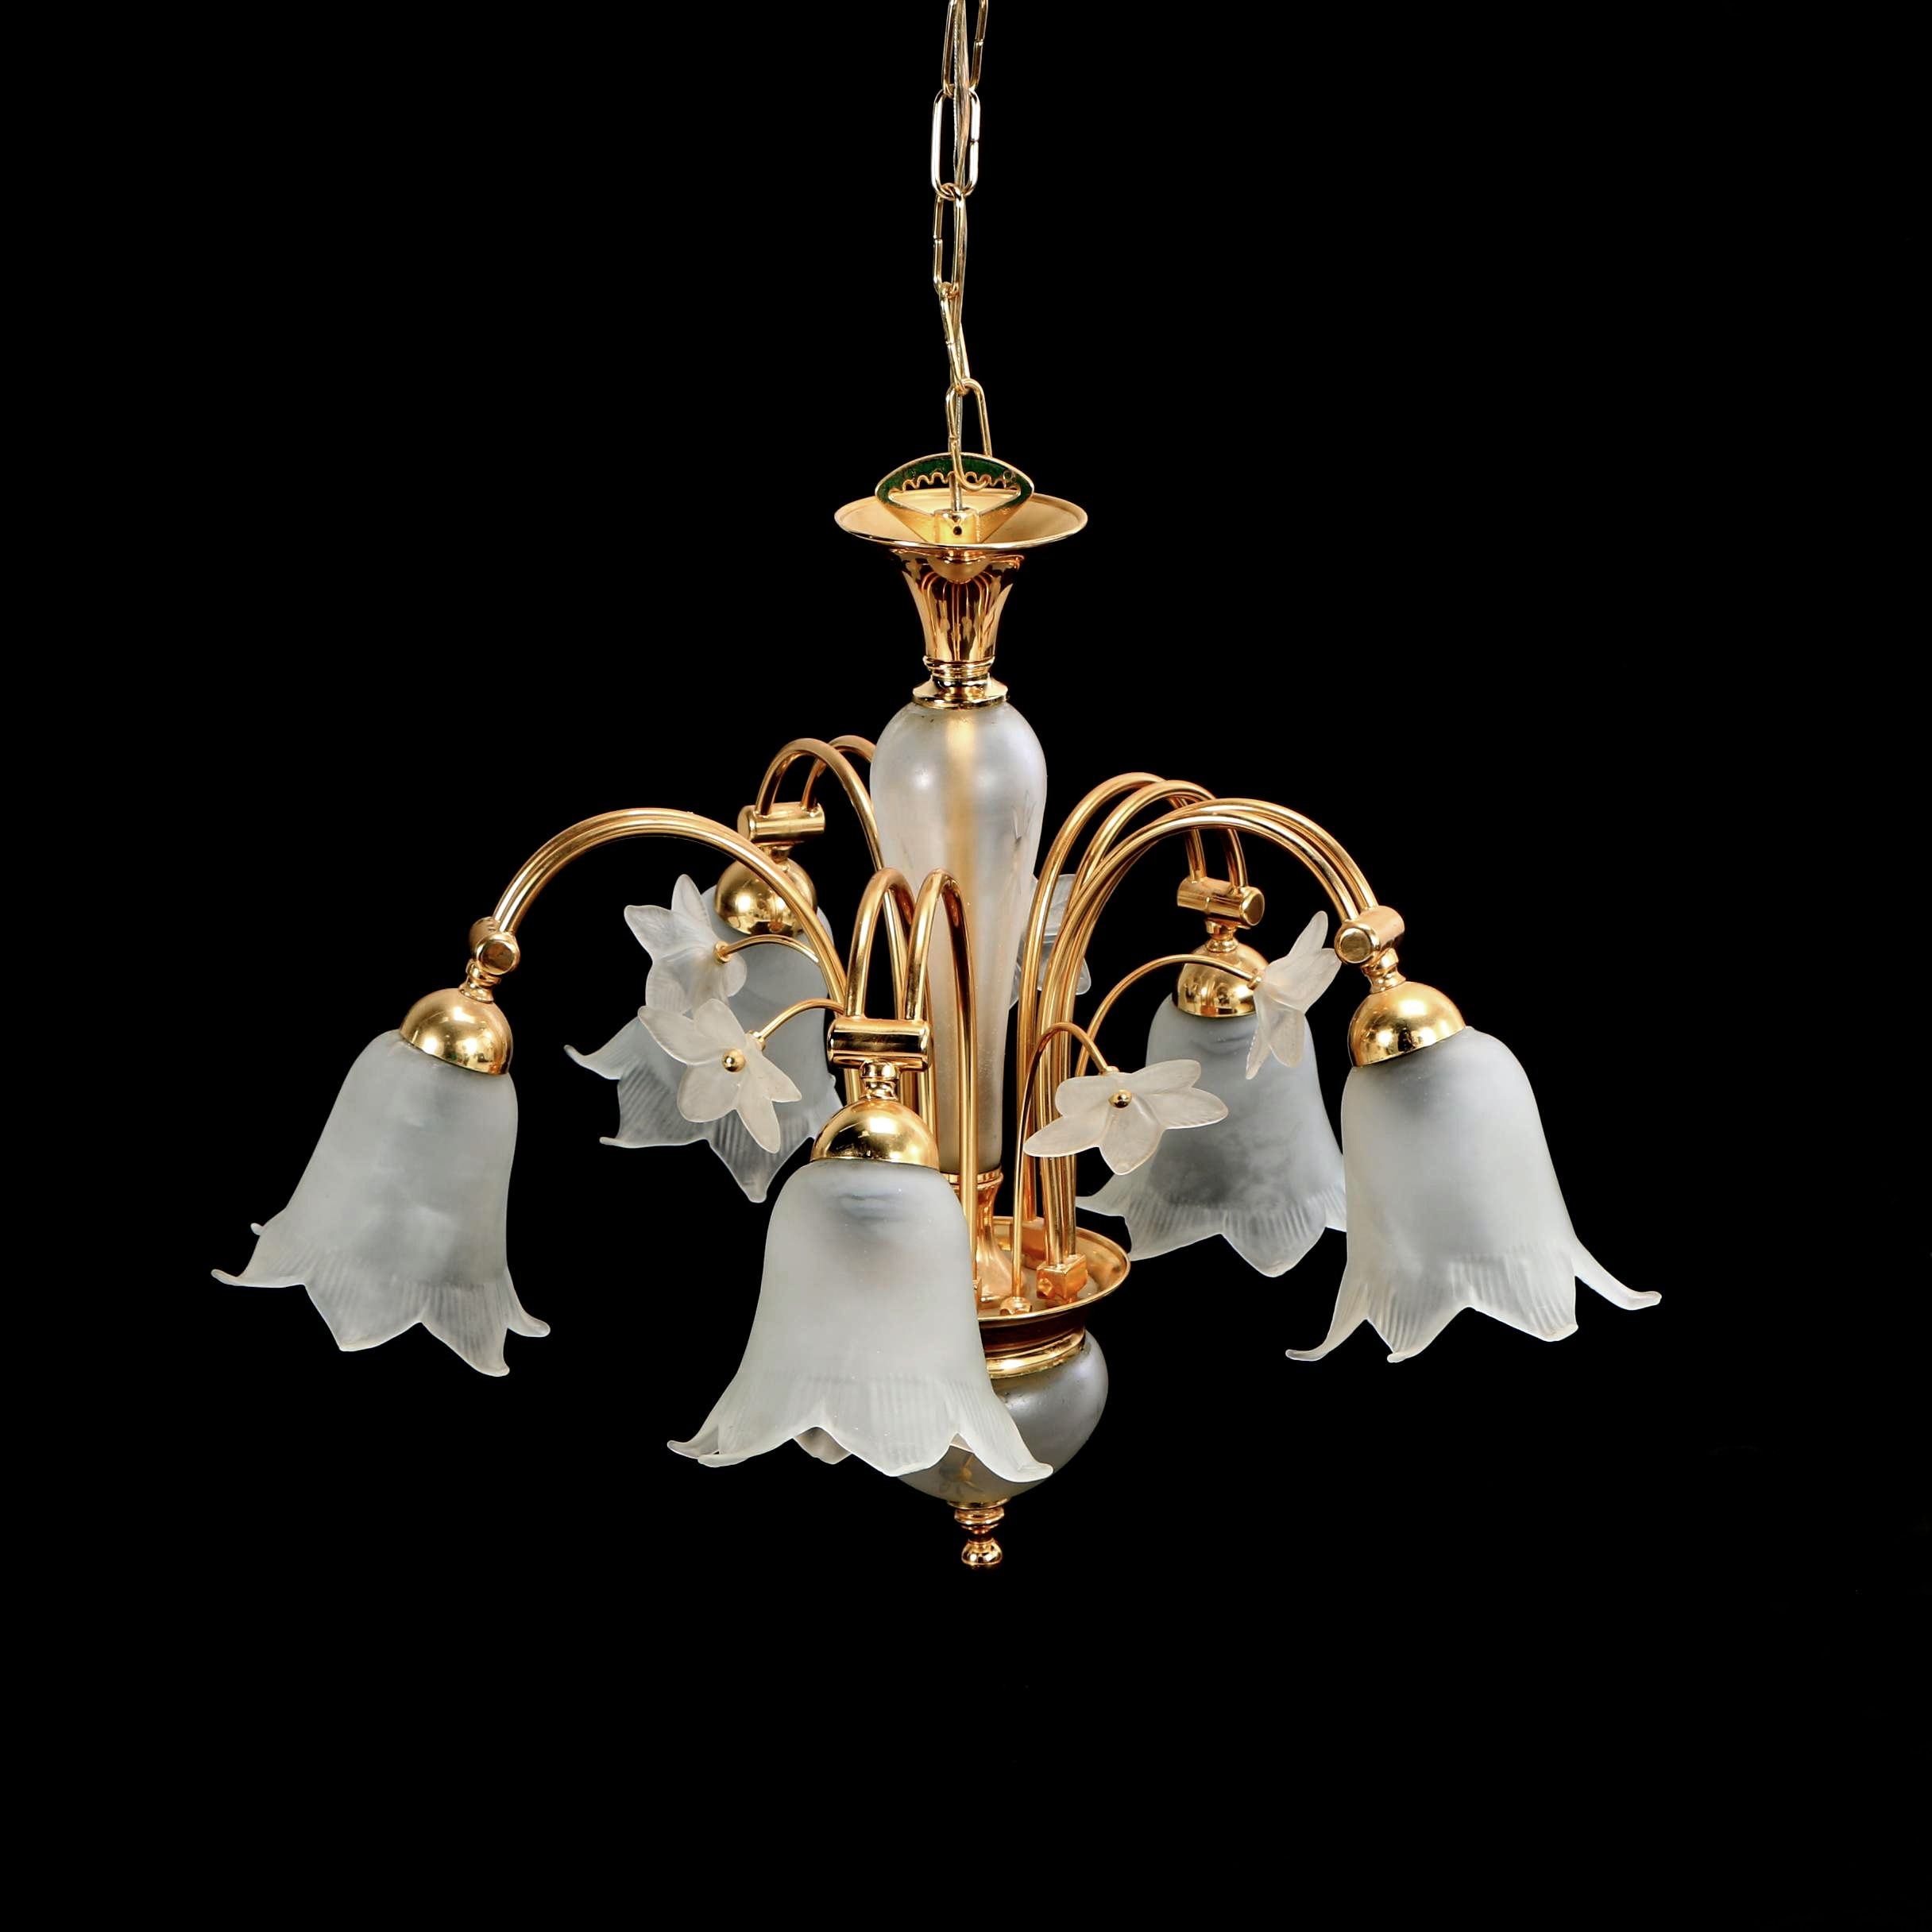 Brass Toned Chandelier with Frosted Glass Lily Shaped Shades and Accents